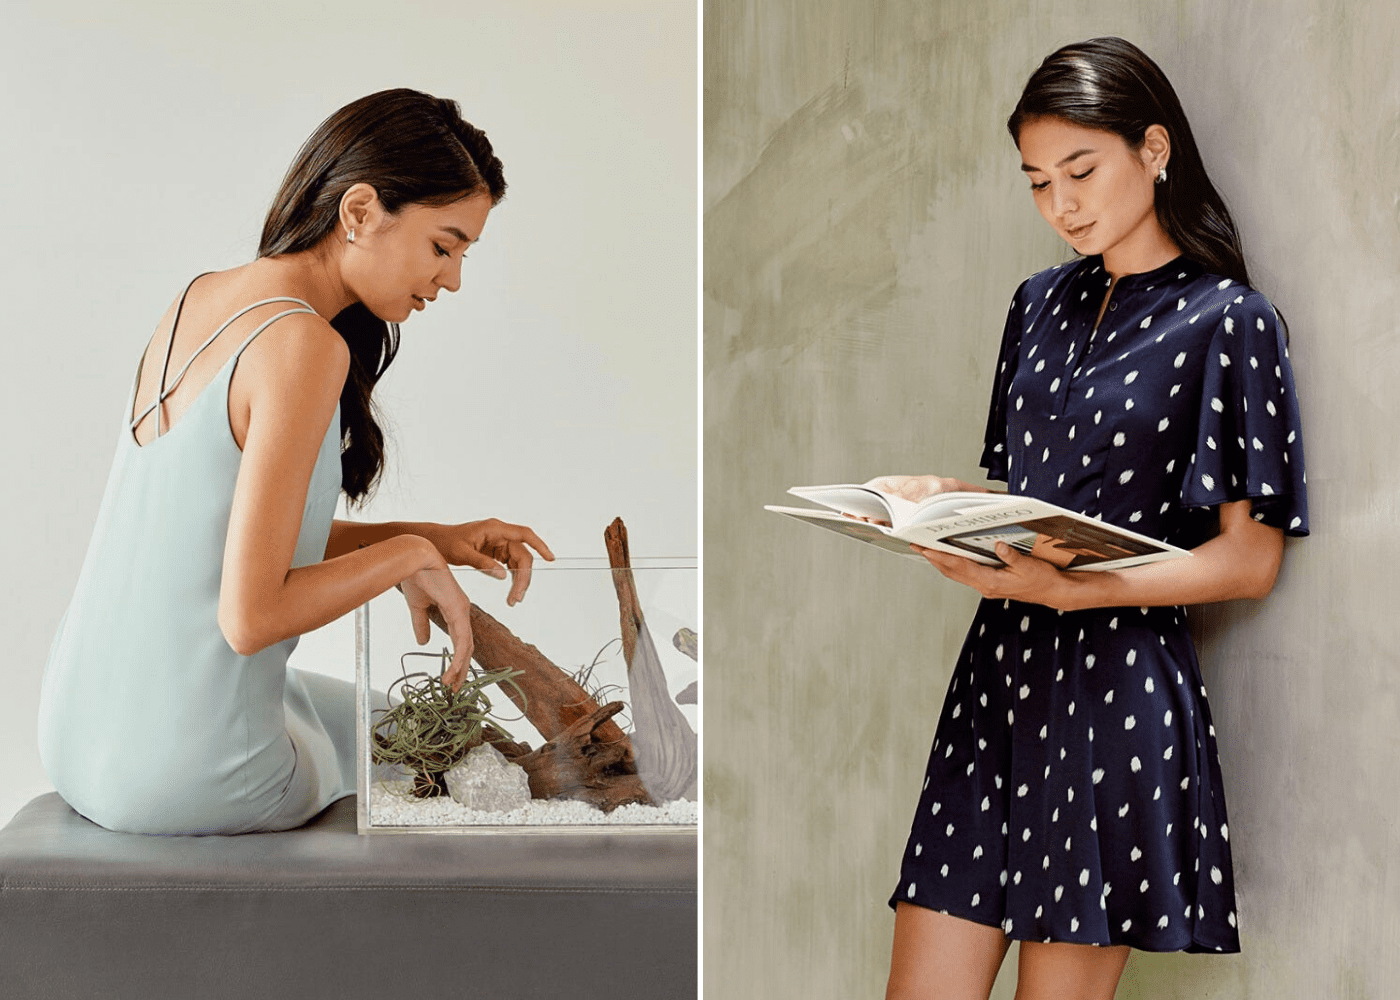 Shop local: Stay home deals from fashion brands: Love Bonito